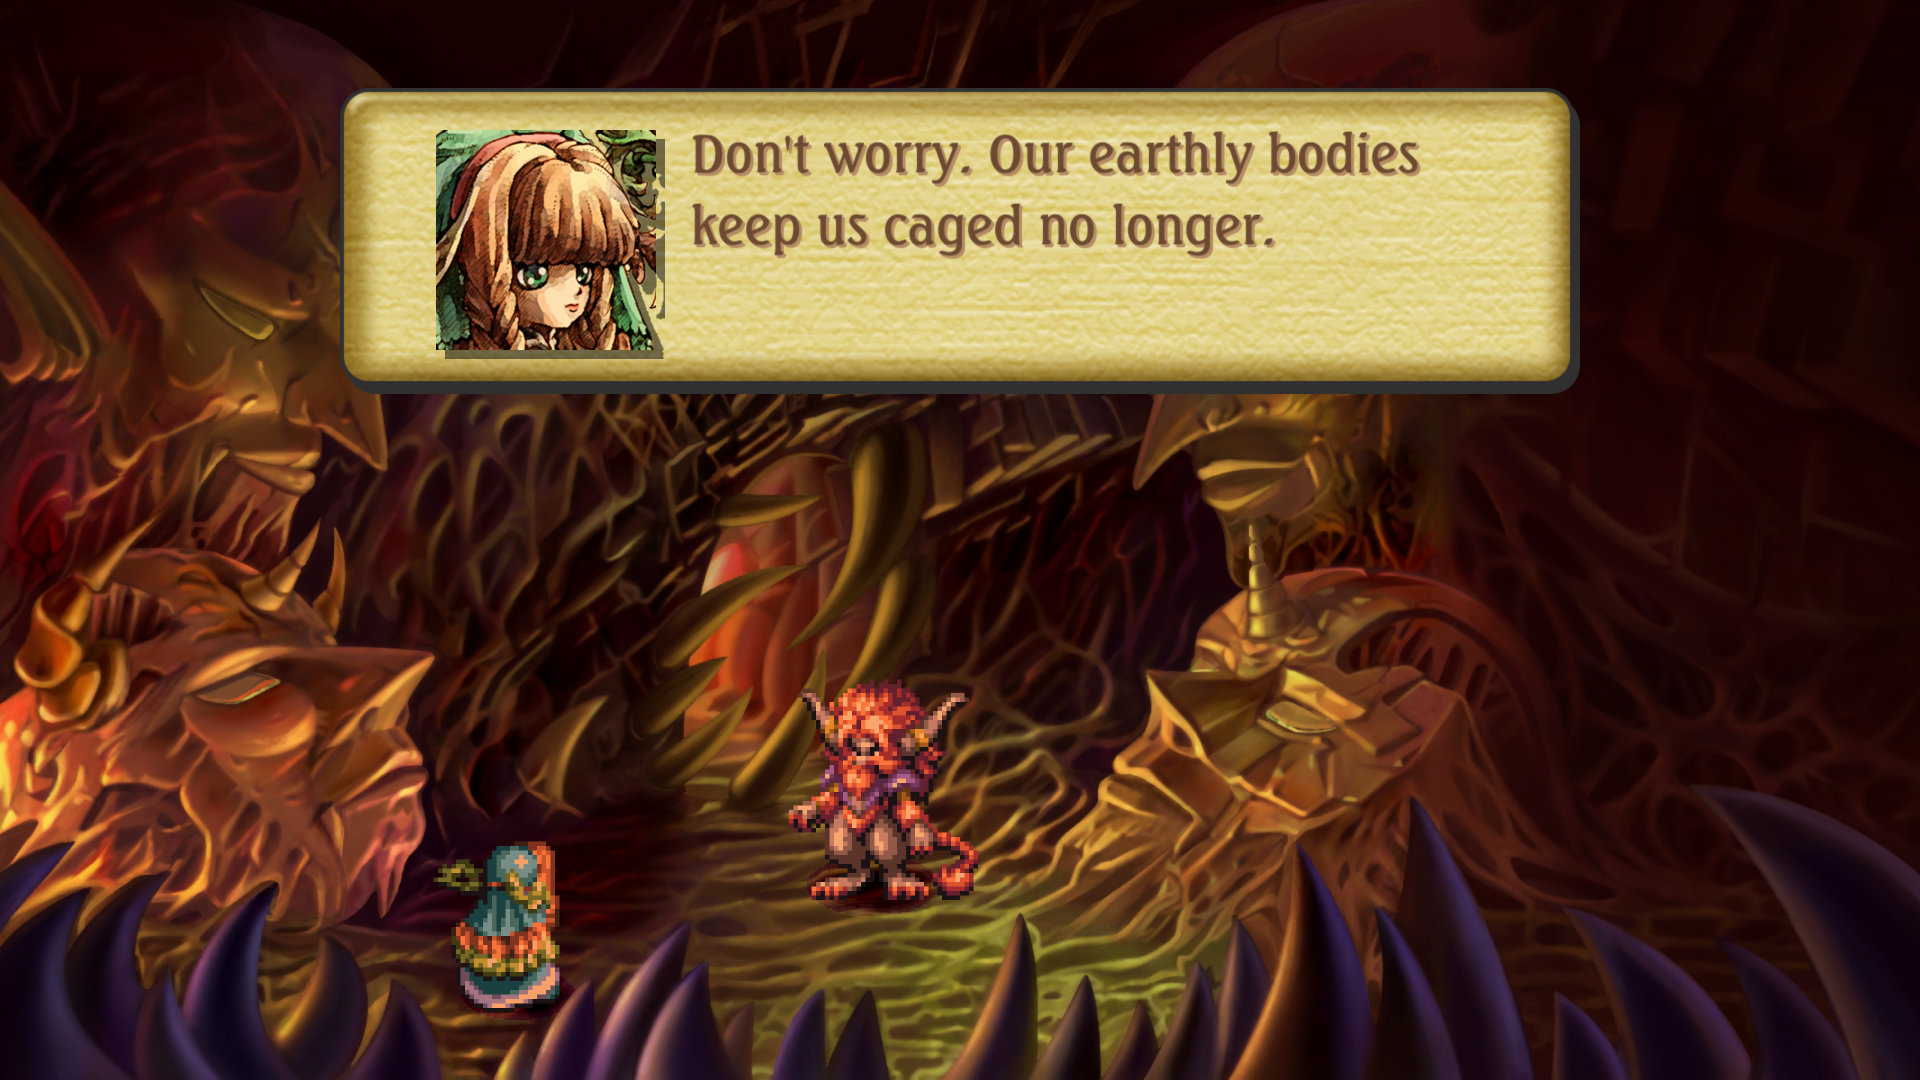 You needn't worry, because their earthly bodies keep them caged no longer in Legend of Mana. Two characters stand in the middle of a cave.